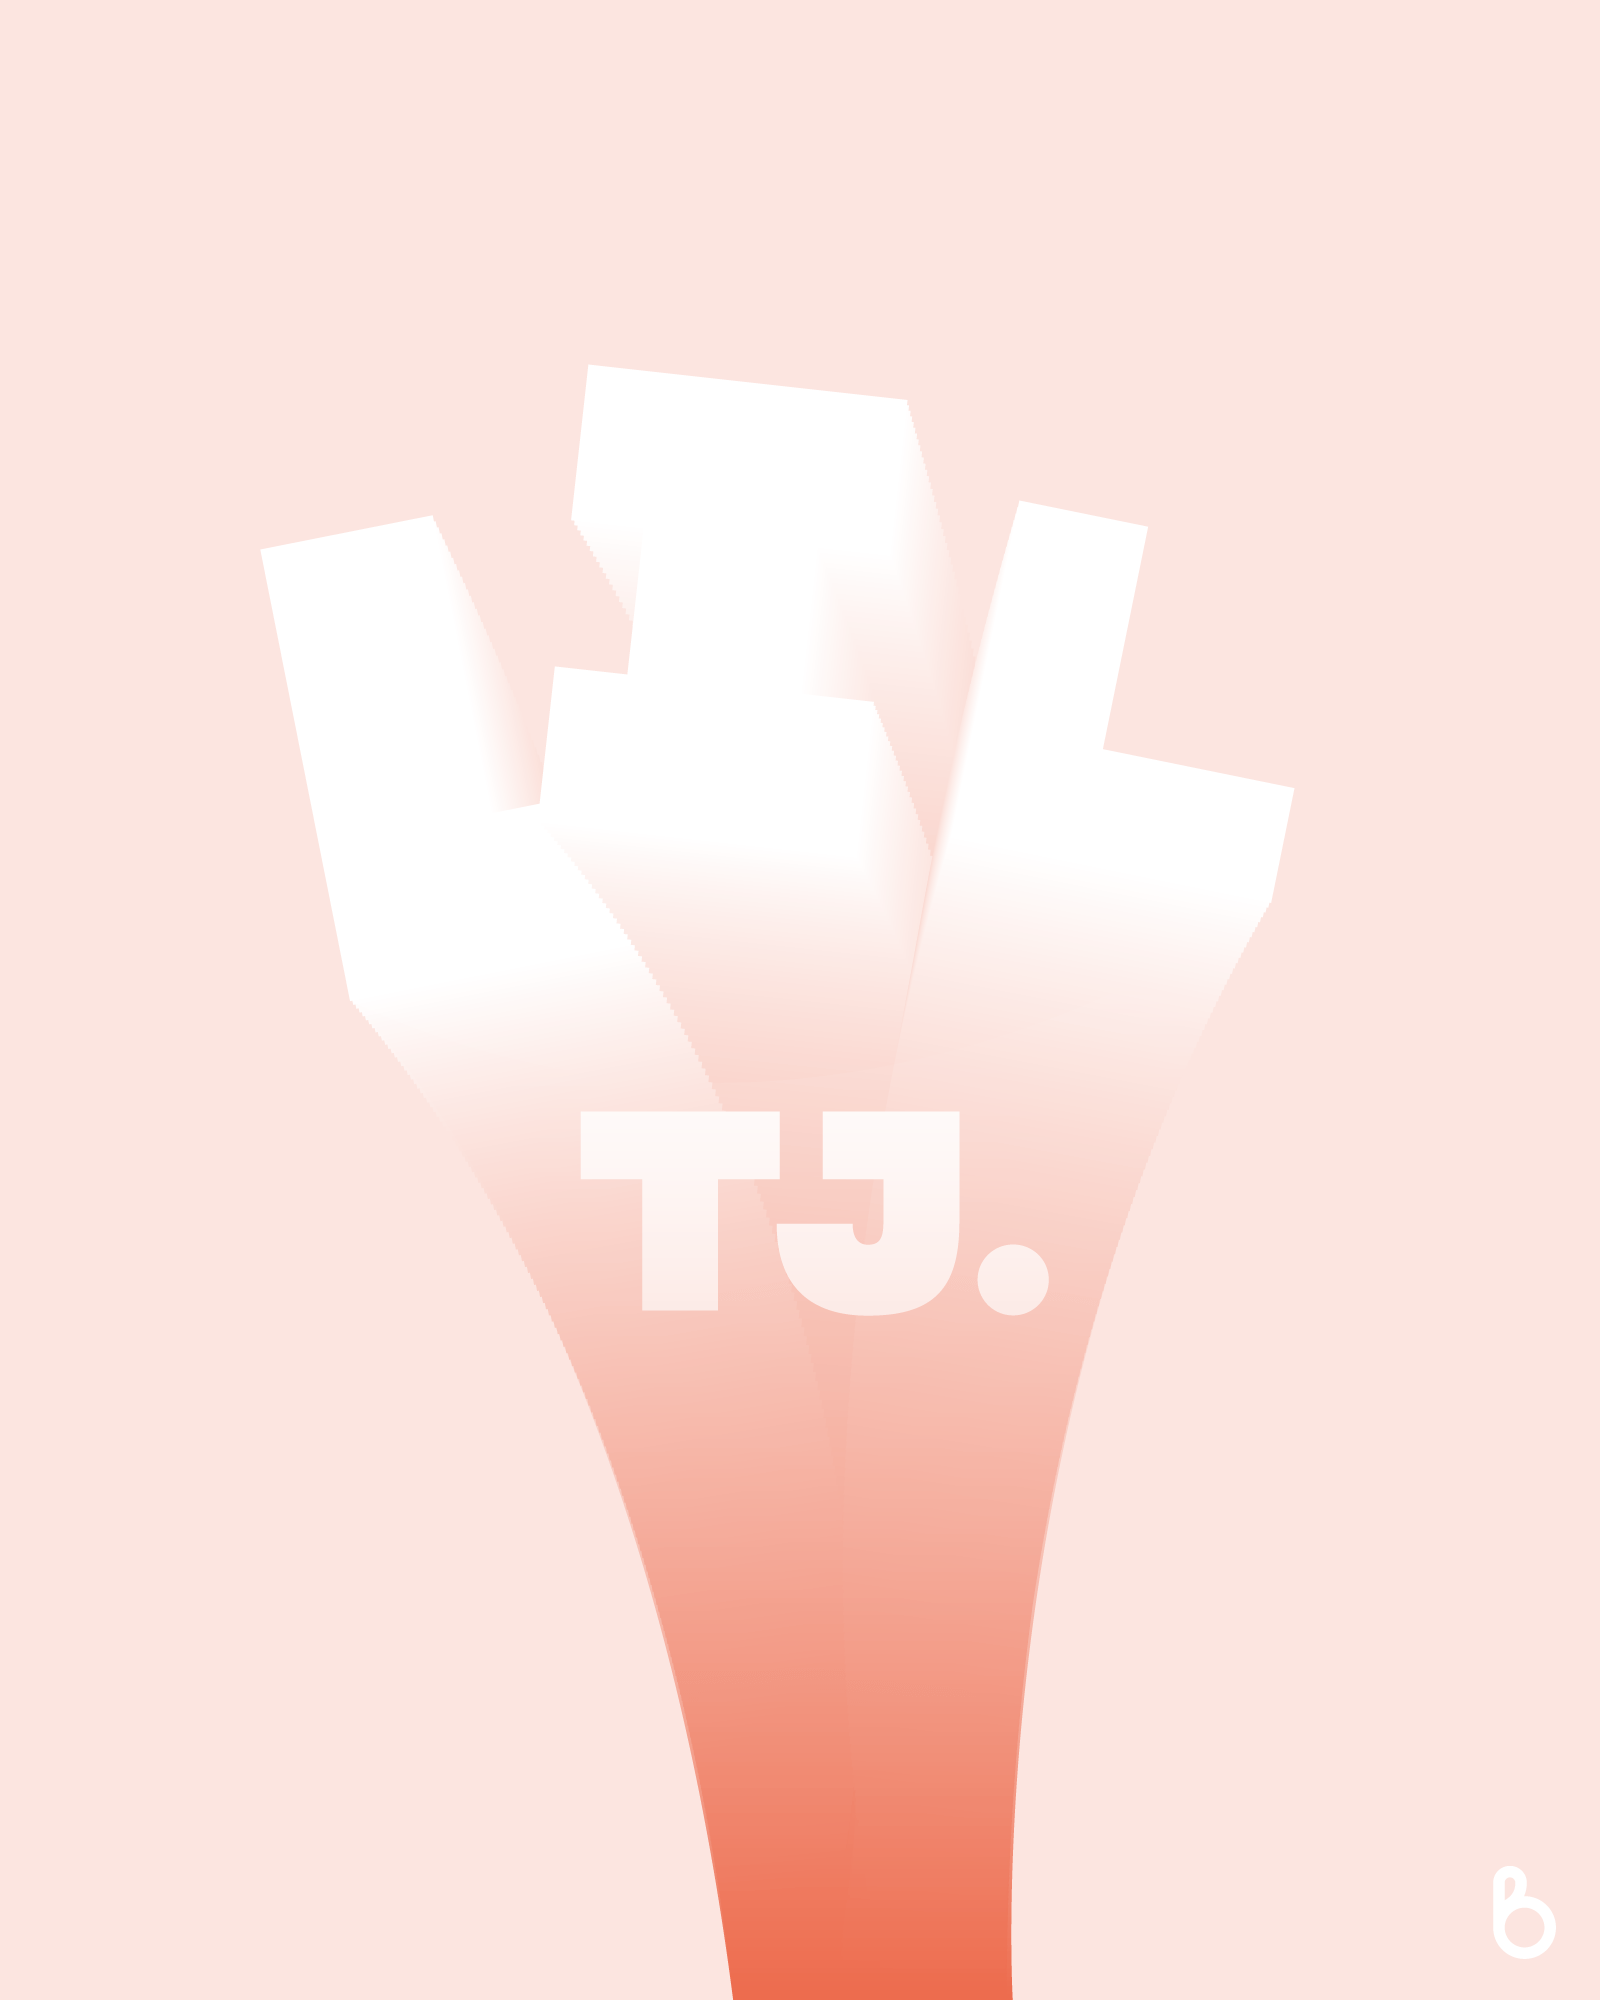 This was an experimental piece with typography and 3D. Admittedly this could be replaced with any text; however, I do enjoy the final result and think the modern, light-nature further complements the product which is Lil TJ (https://bybrice.com/products/lil-tj)